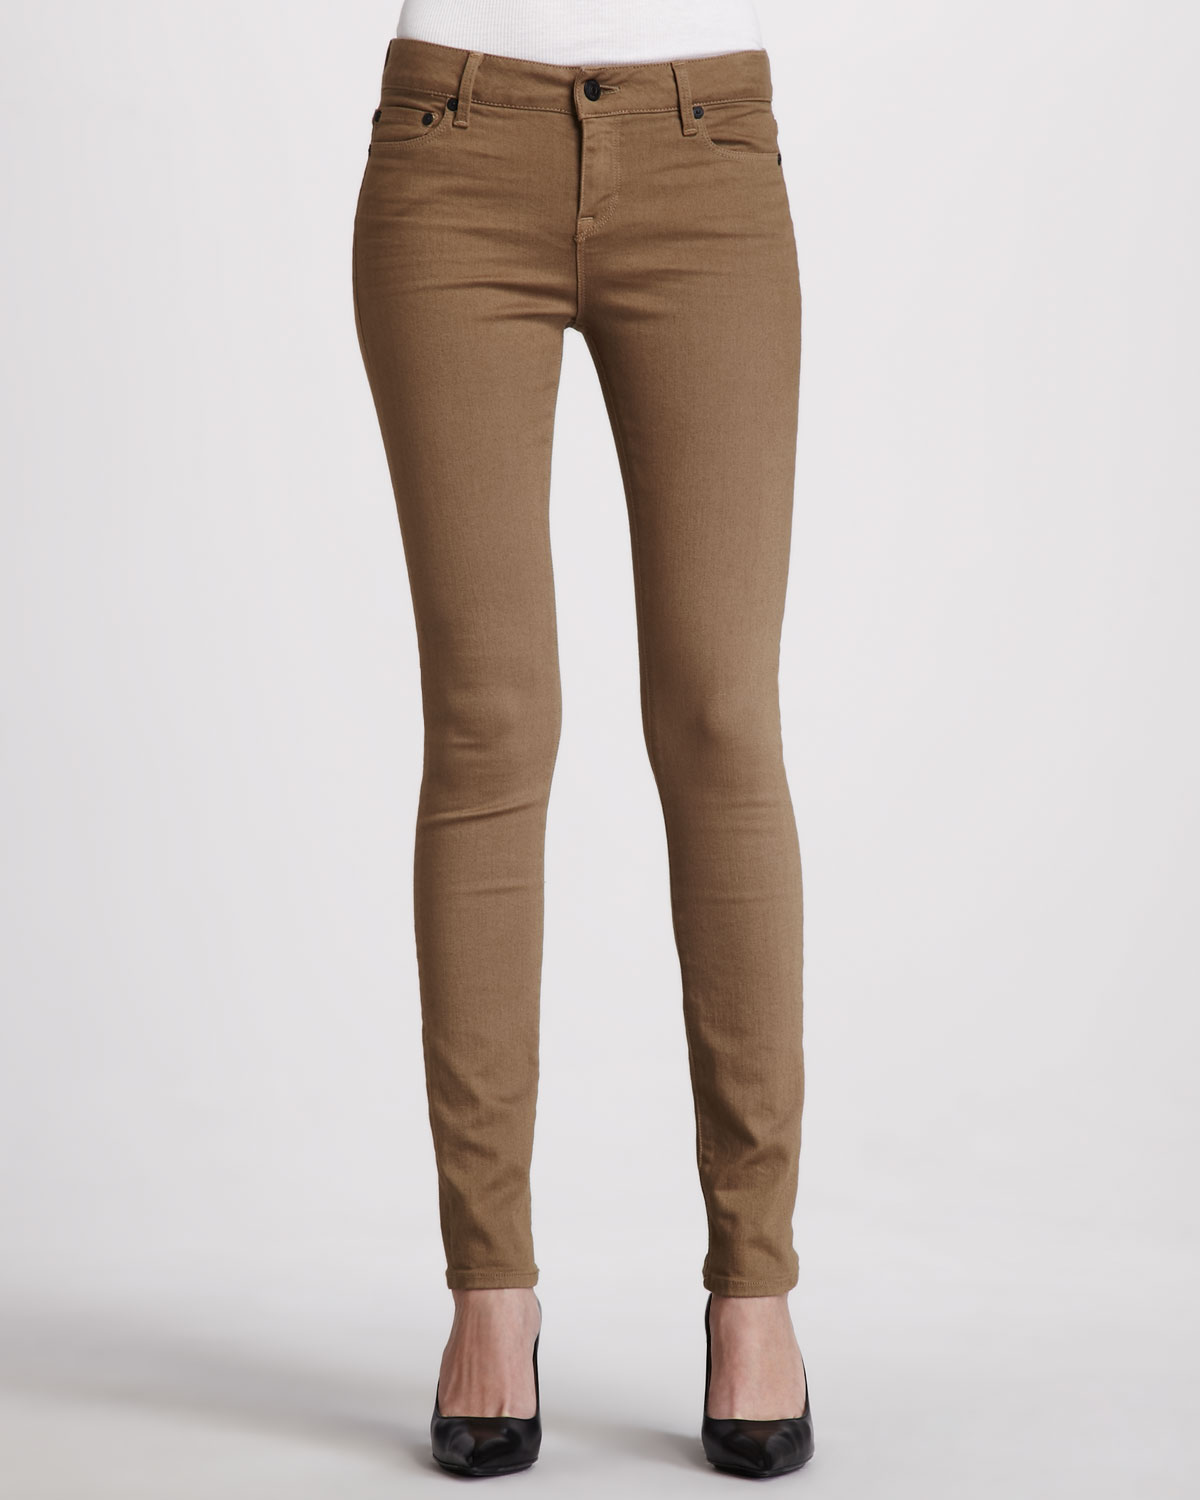 Awesome Details About New Womens Khaki Green Slim Combat Pants Skinny Cargo